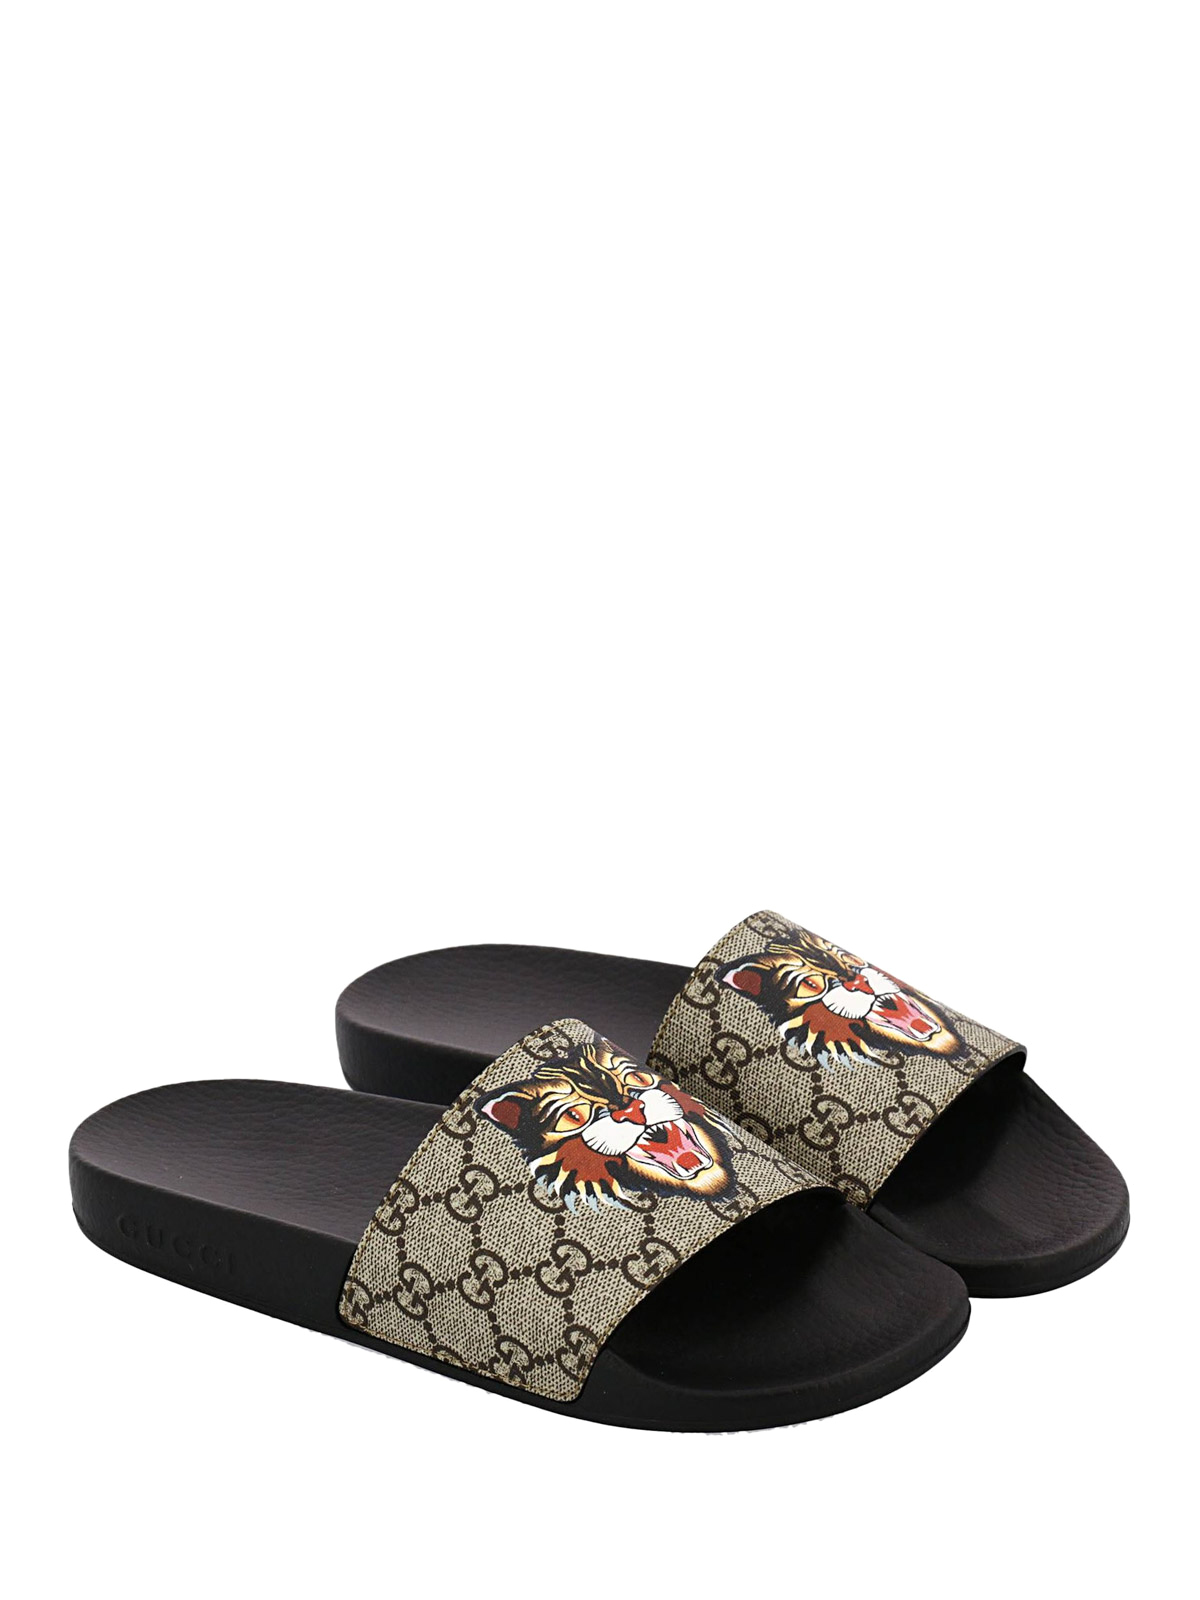 38b2ebd979f8 Gucci - Angry Cat rubber slippers - Loafers   Slippers - 481155 ...